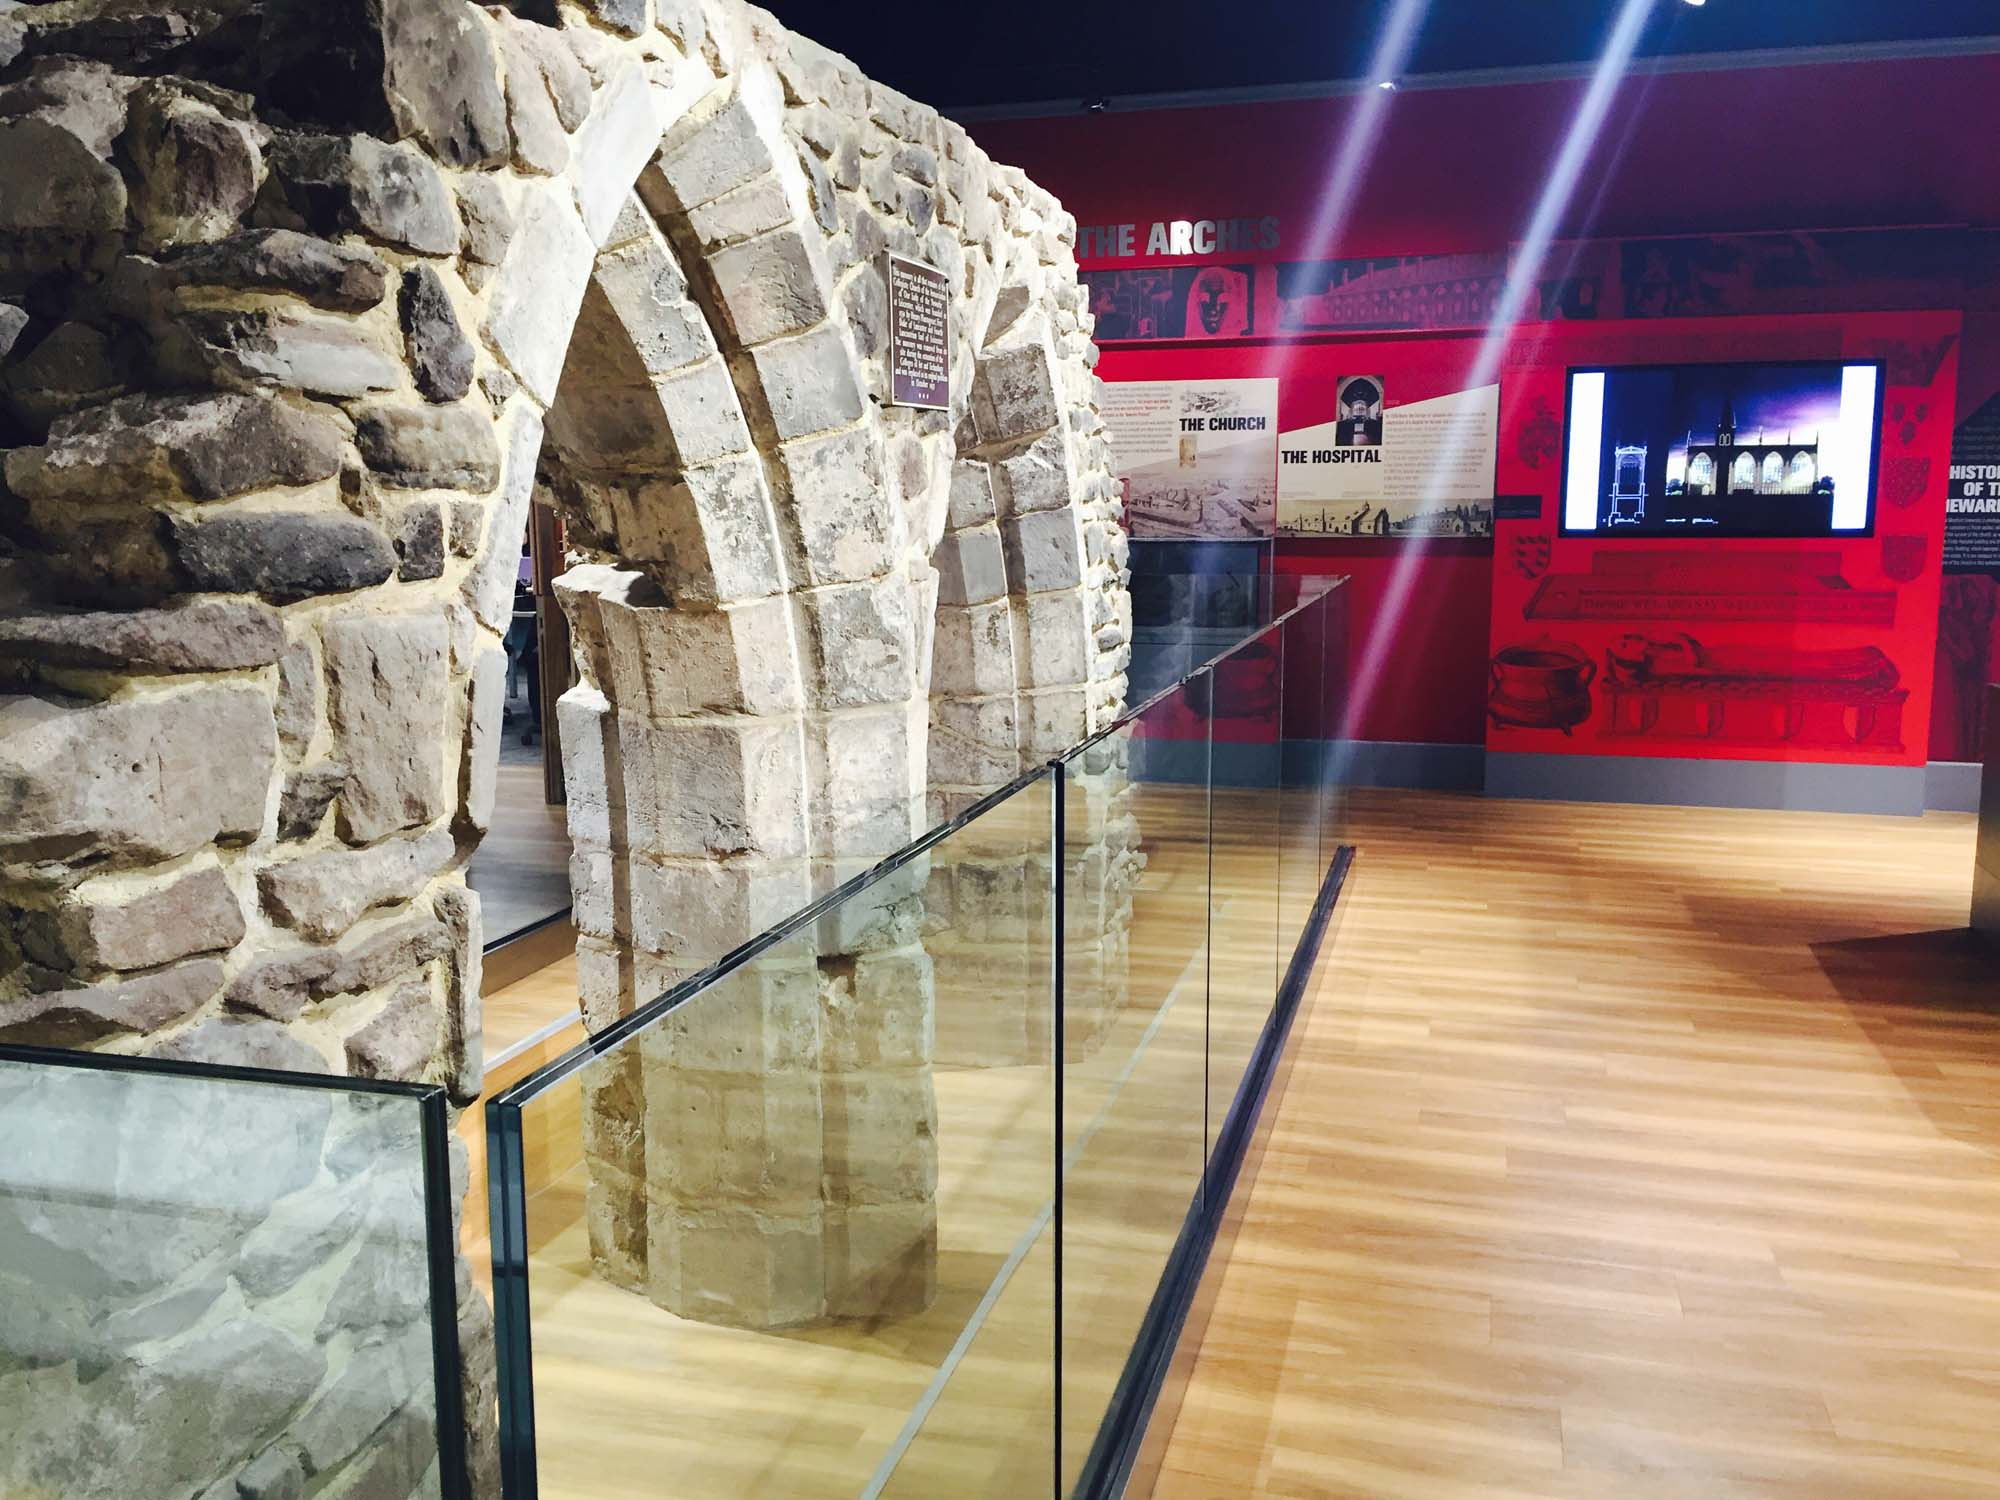 The remains of the Church of the Annunciation in the DMU Heritage Cetre - DMU Heritage Centre